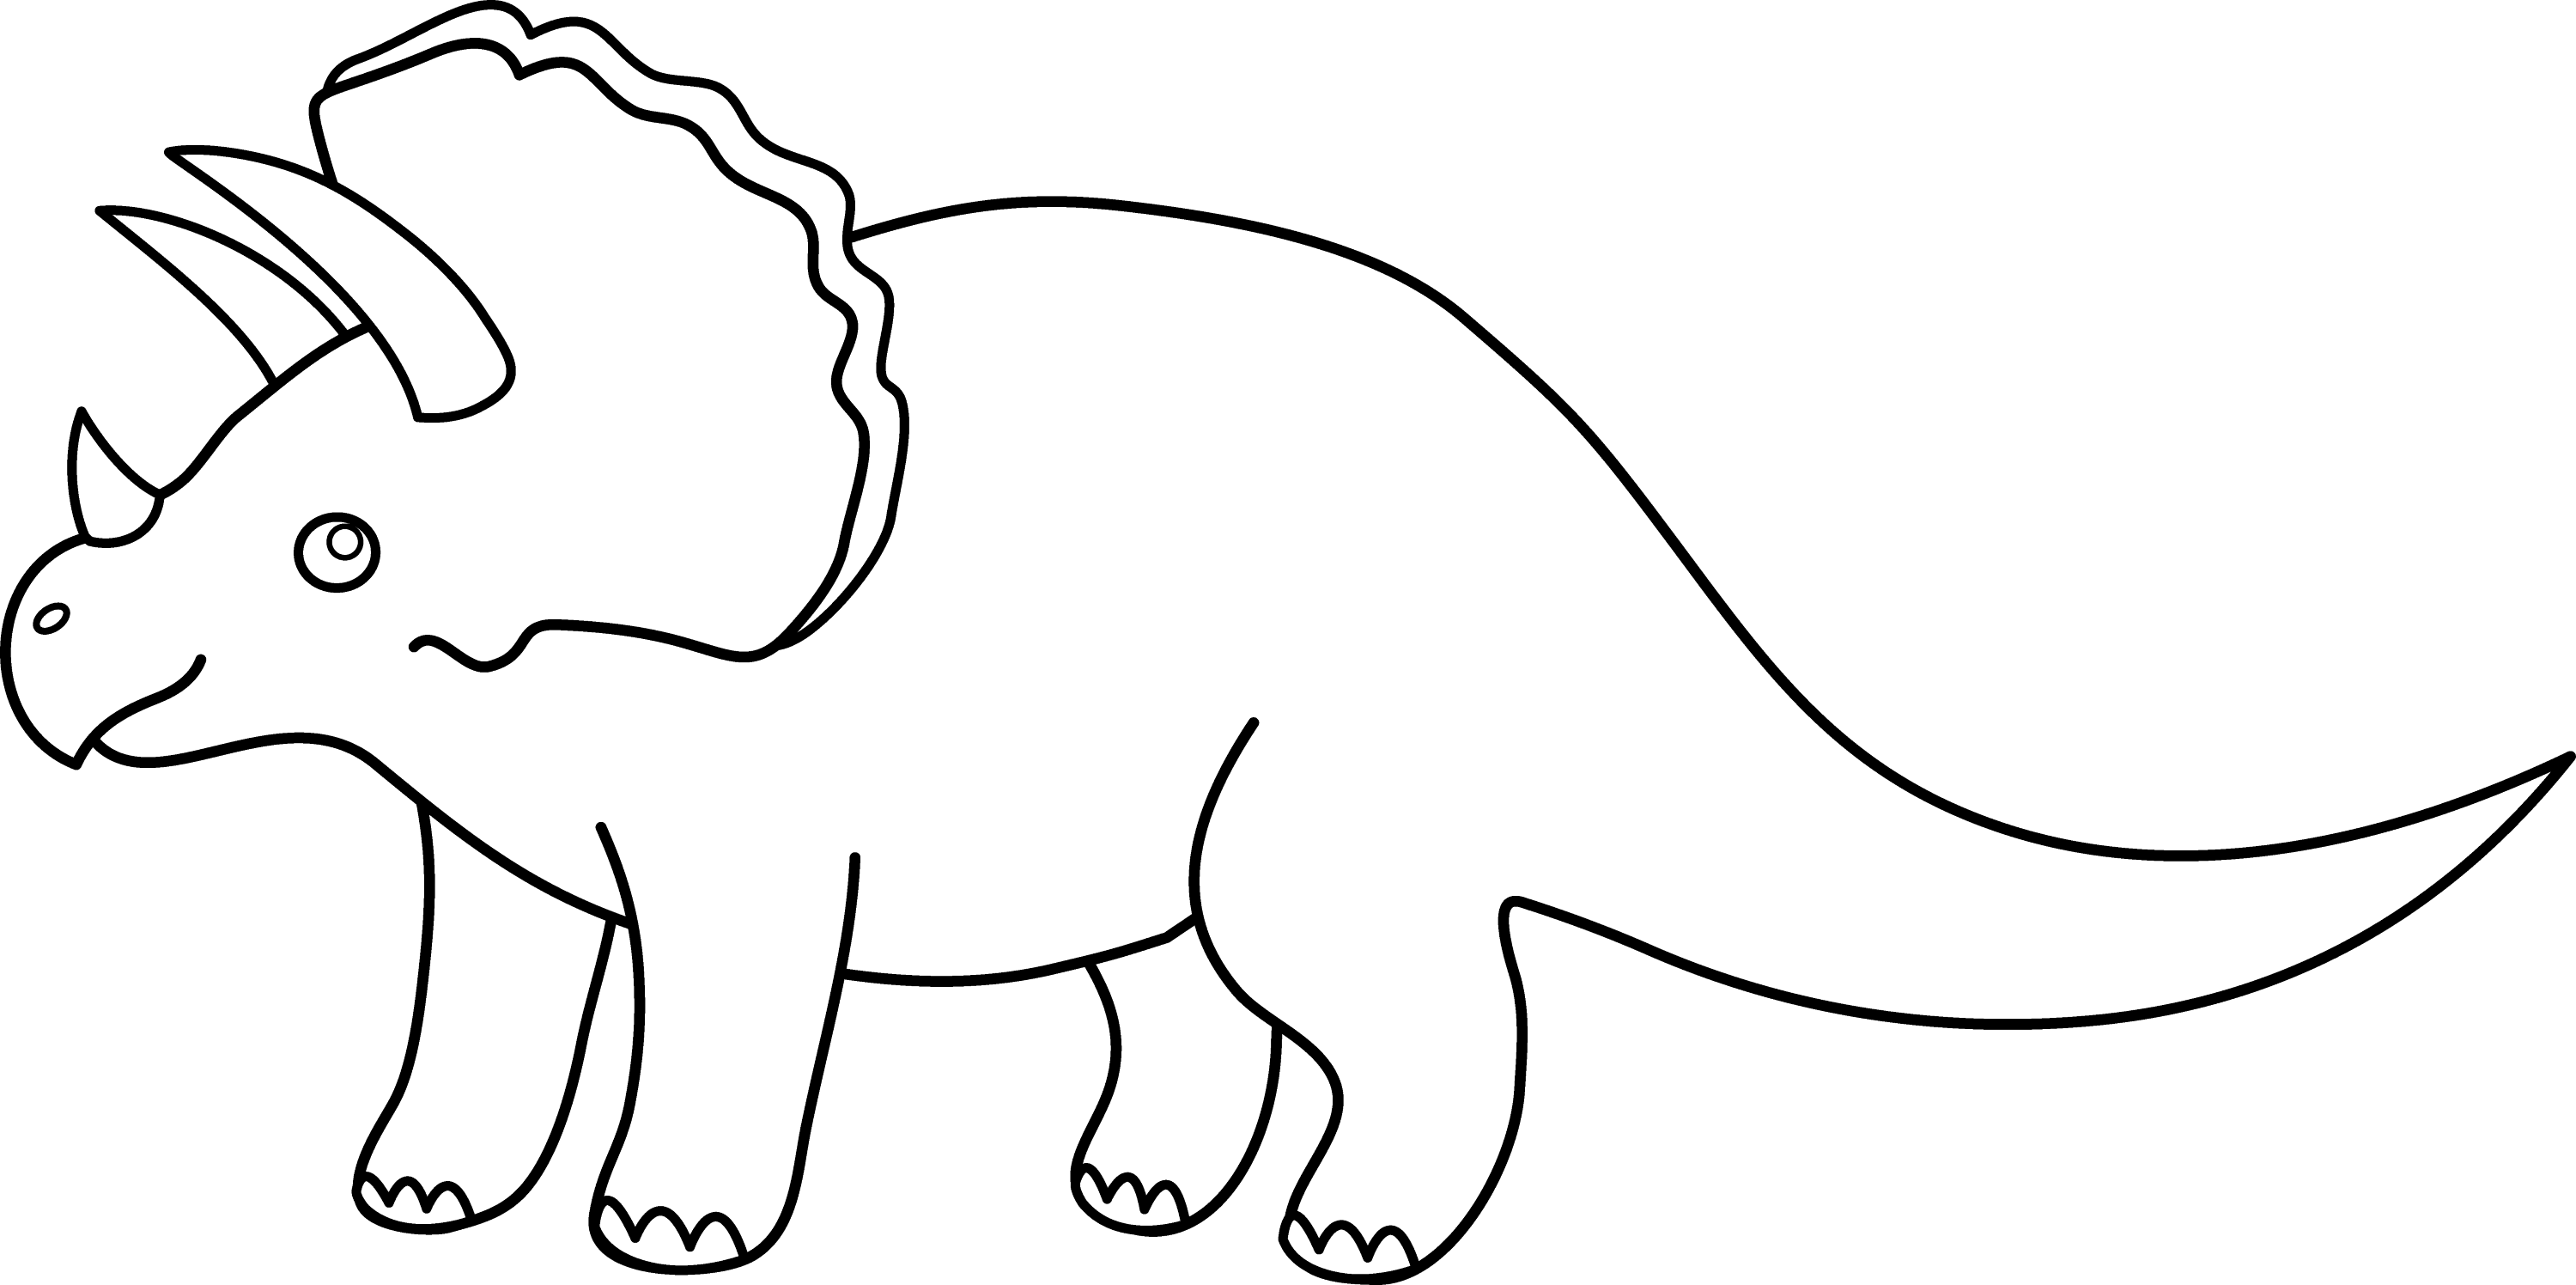 Triceratops Dinosaur Line Art 1115 on Reptile Worksheets Preschool